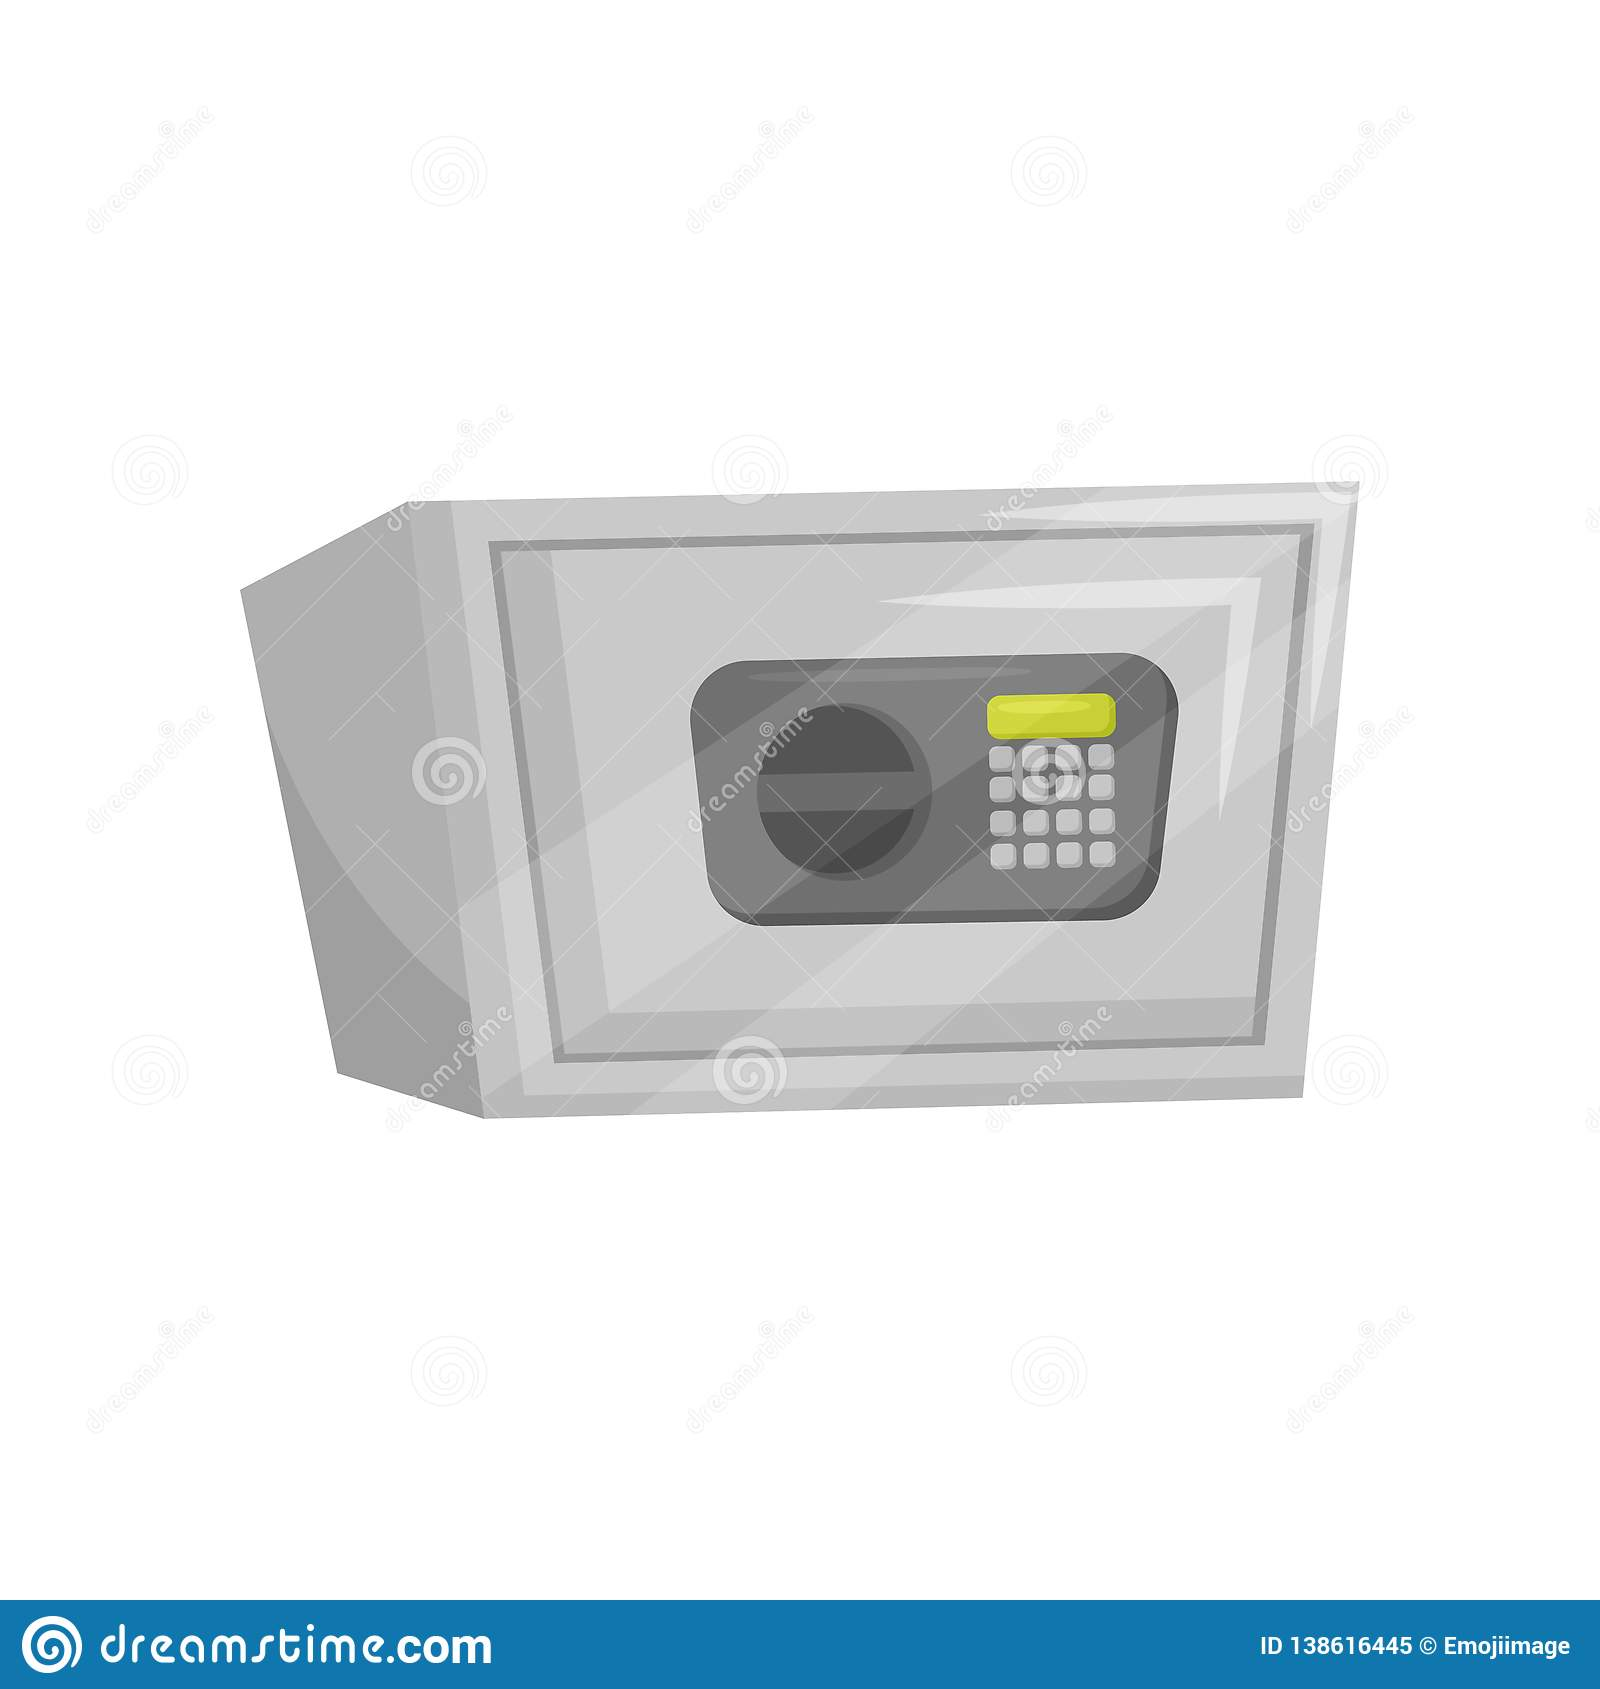 Steel Safe With Button Keypad Small Strong Cabinet With Electronic Code Lock Flat Vector Design Stock Vector Illustration Of Illustration Finance 138616445